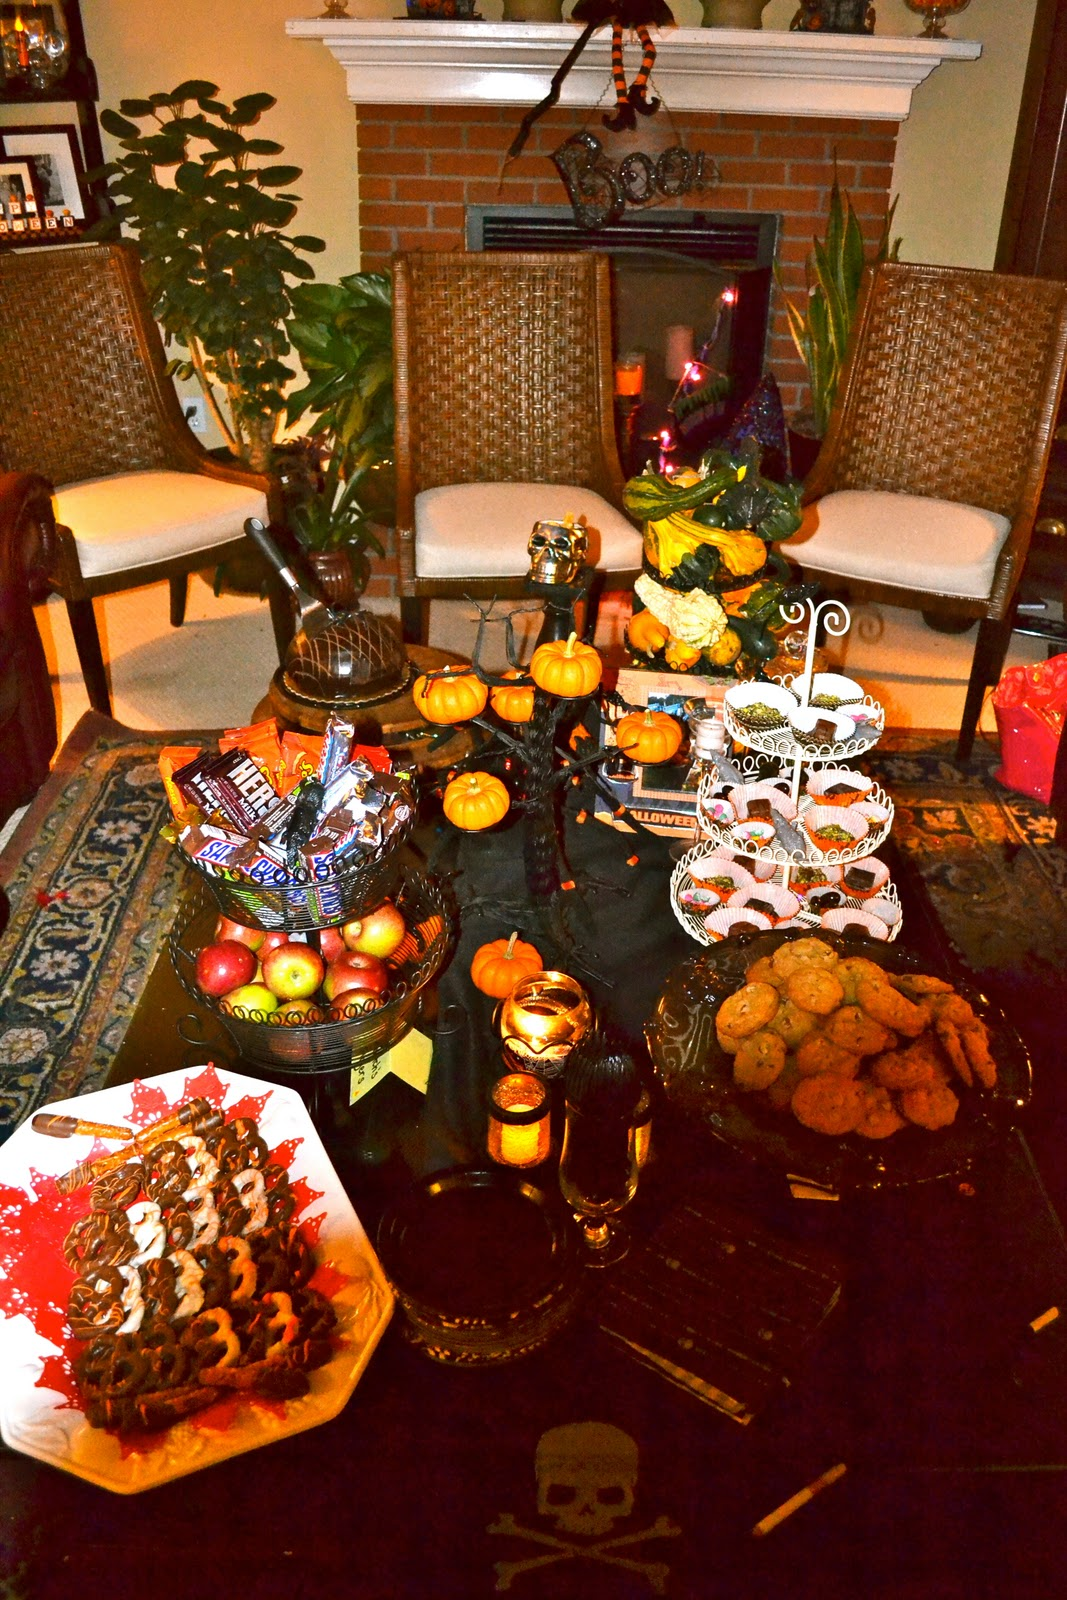 Halloween Fun & Decor Ideas!! How would you decorate for a ...